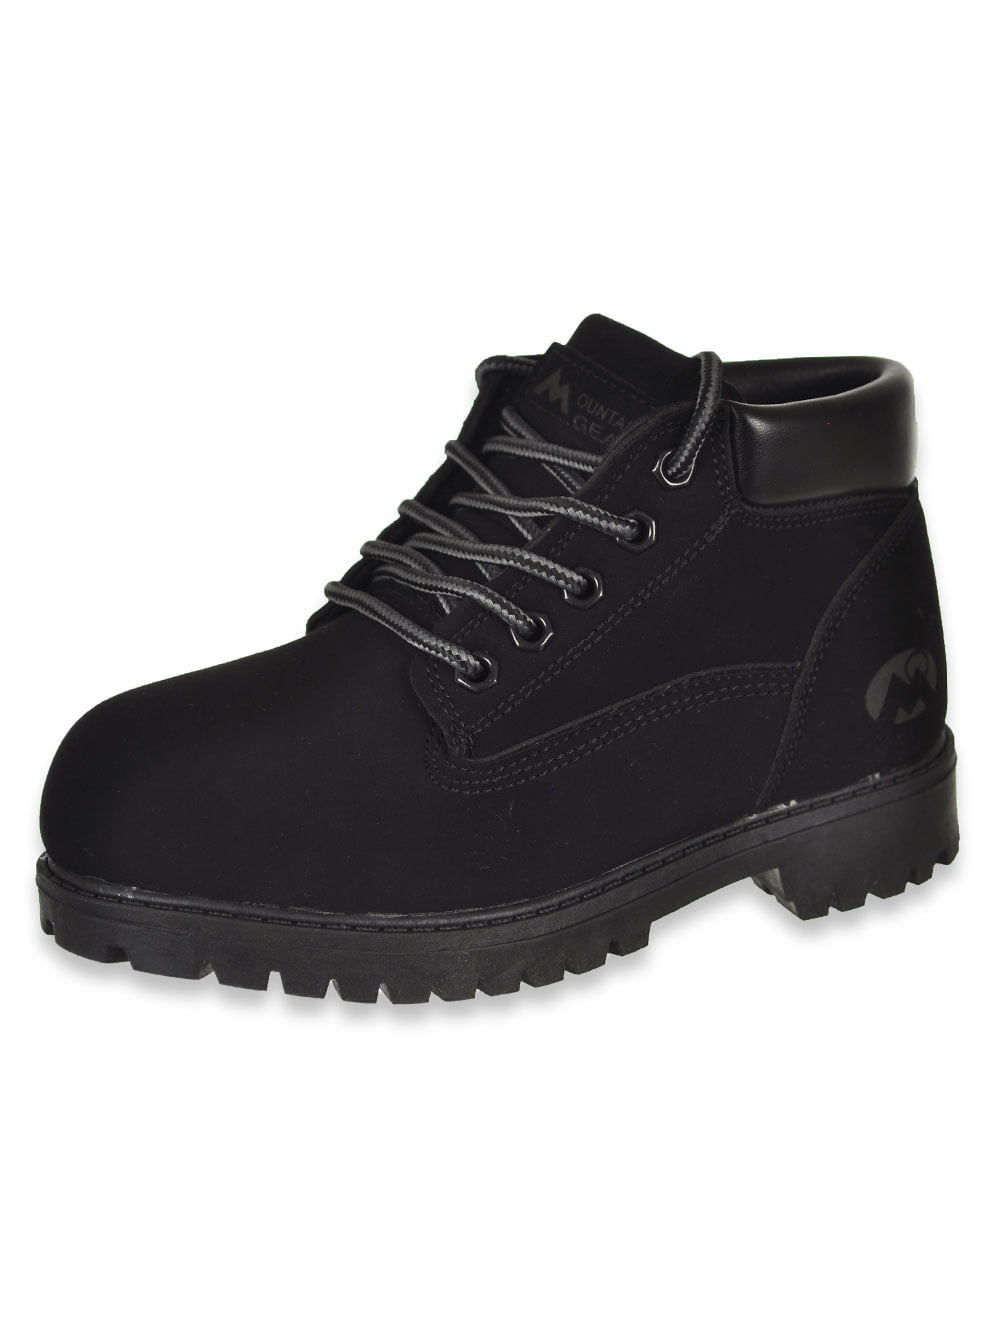 Youth Boys Tucker Lace Up Boots Size 5 or 6 New With Tags